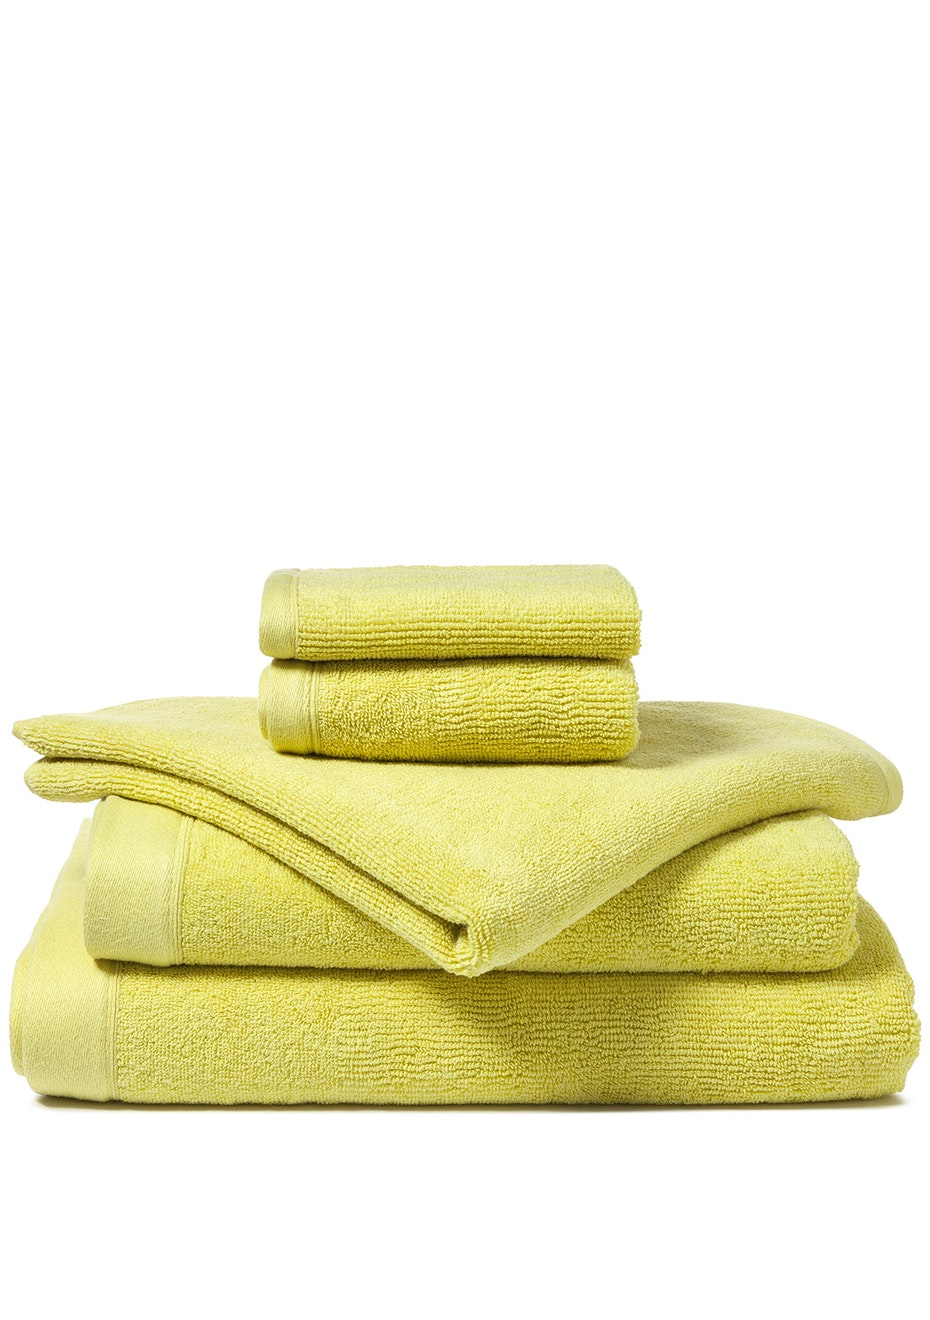 Canningvale - Corduroy Rib Bath Sheet Citron